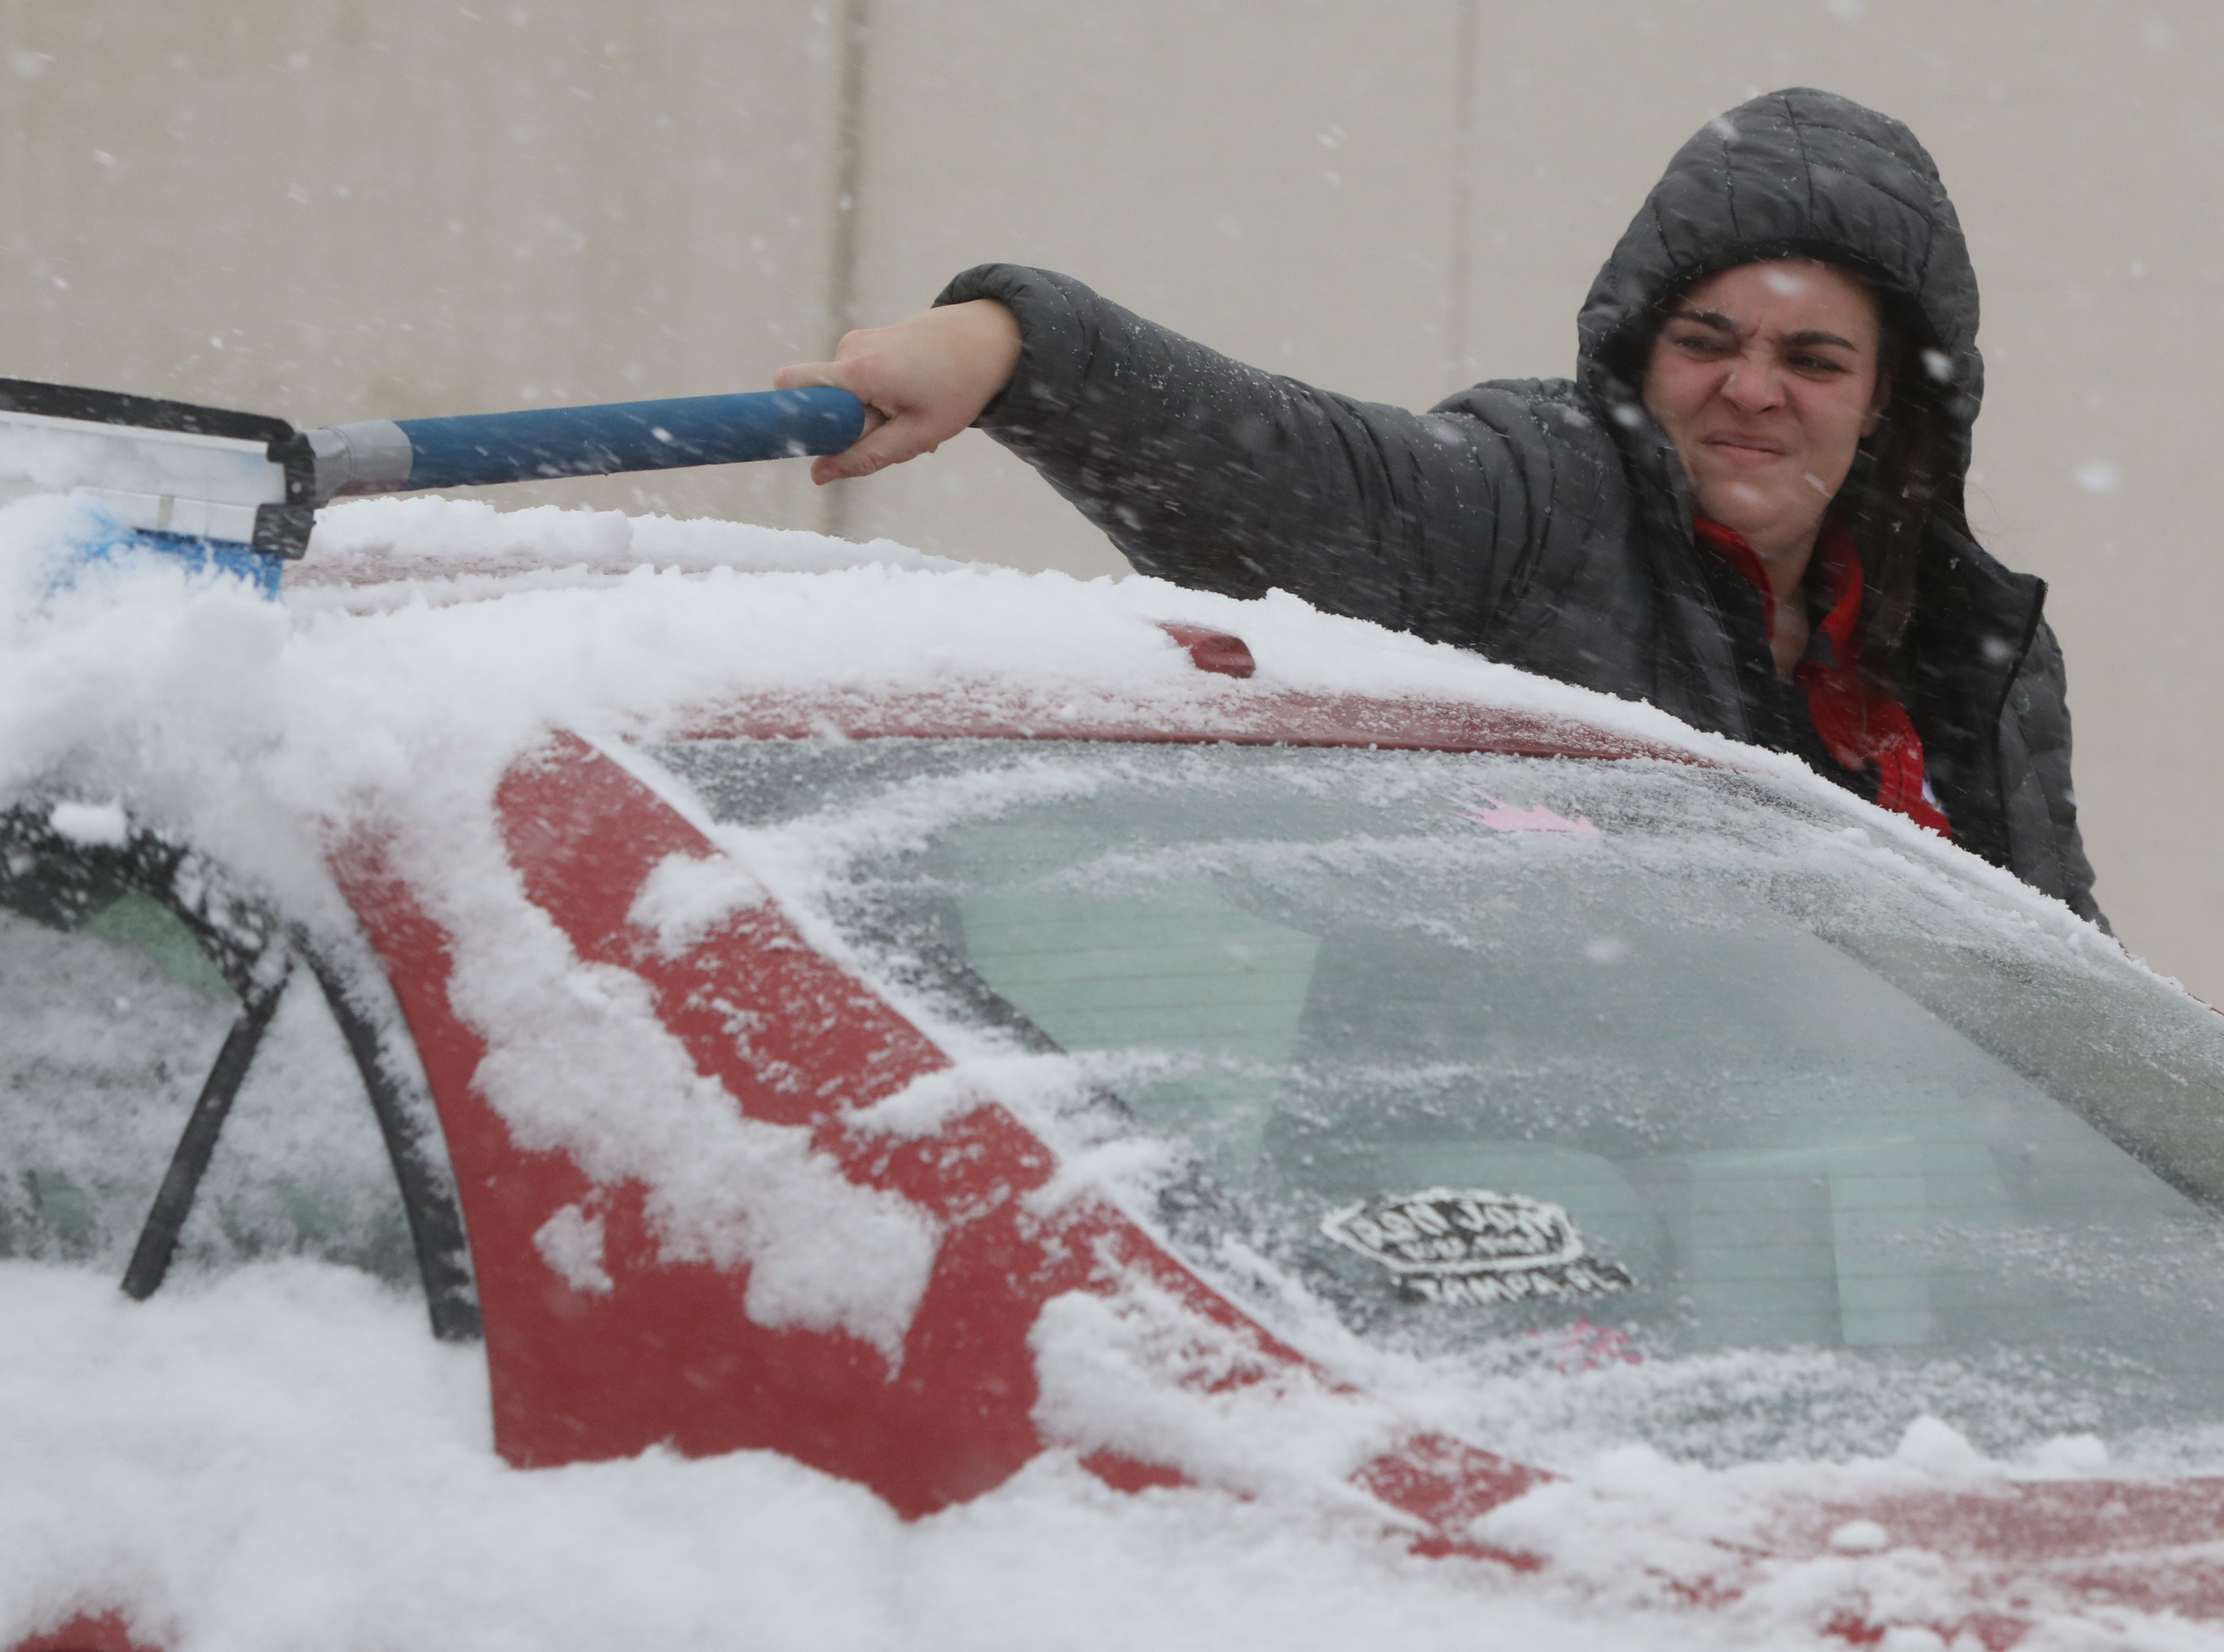 Kassie Mattoon of Woodland Park clears snow from her car as she heads home after working this afternoon at Applebees in Totowa.